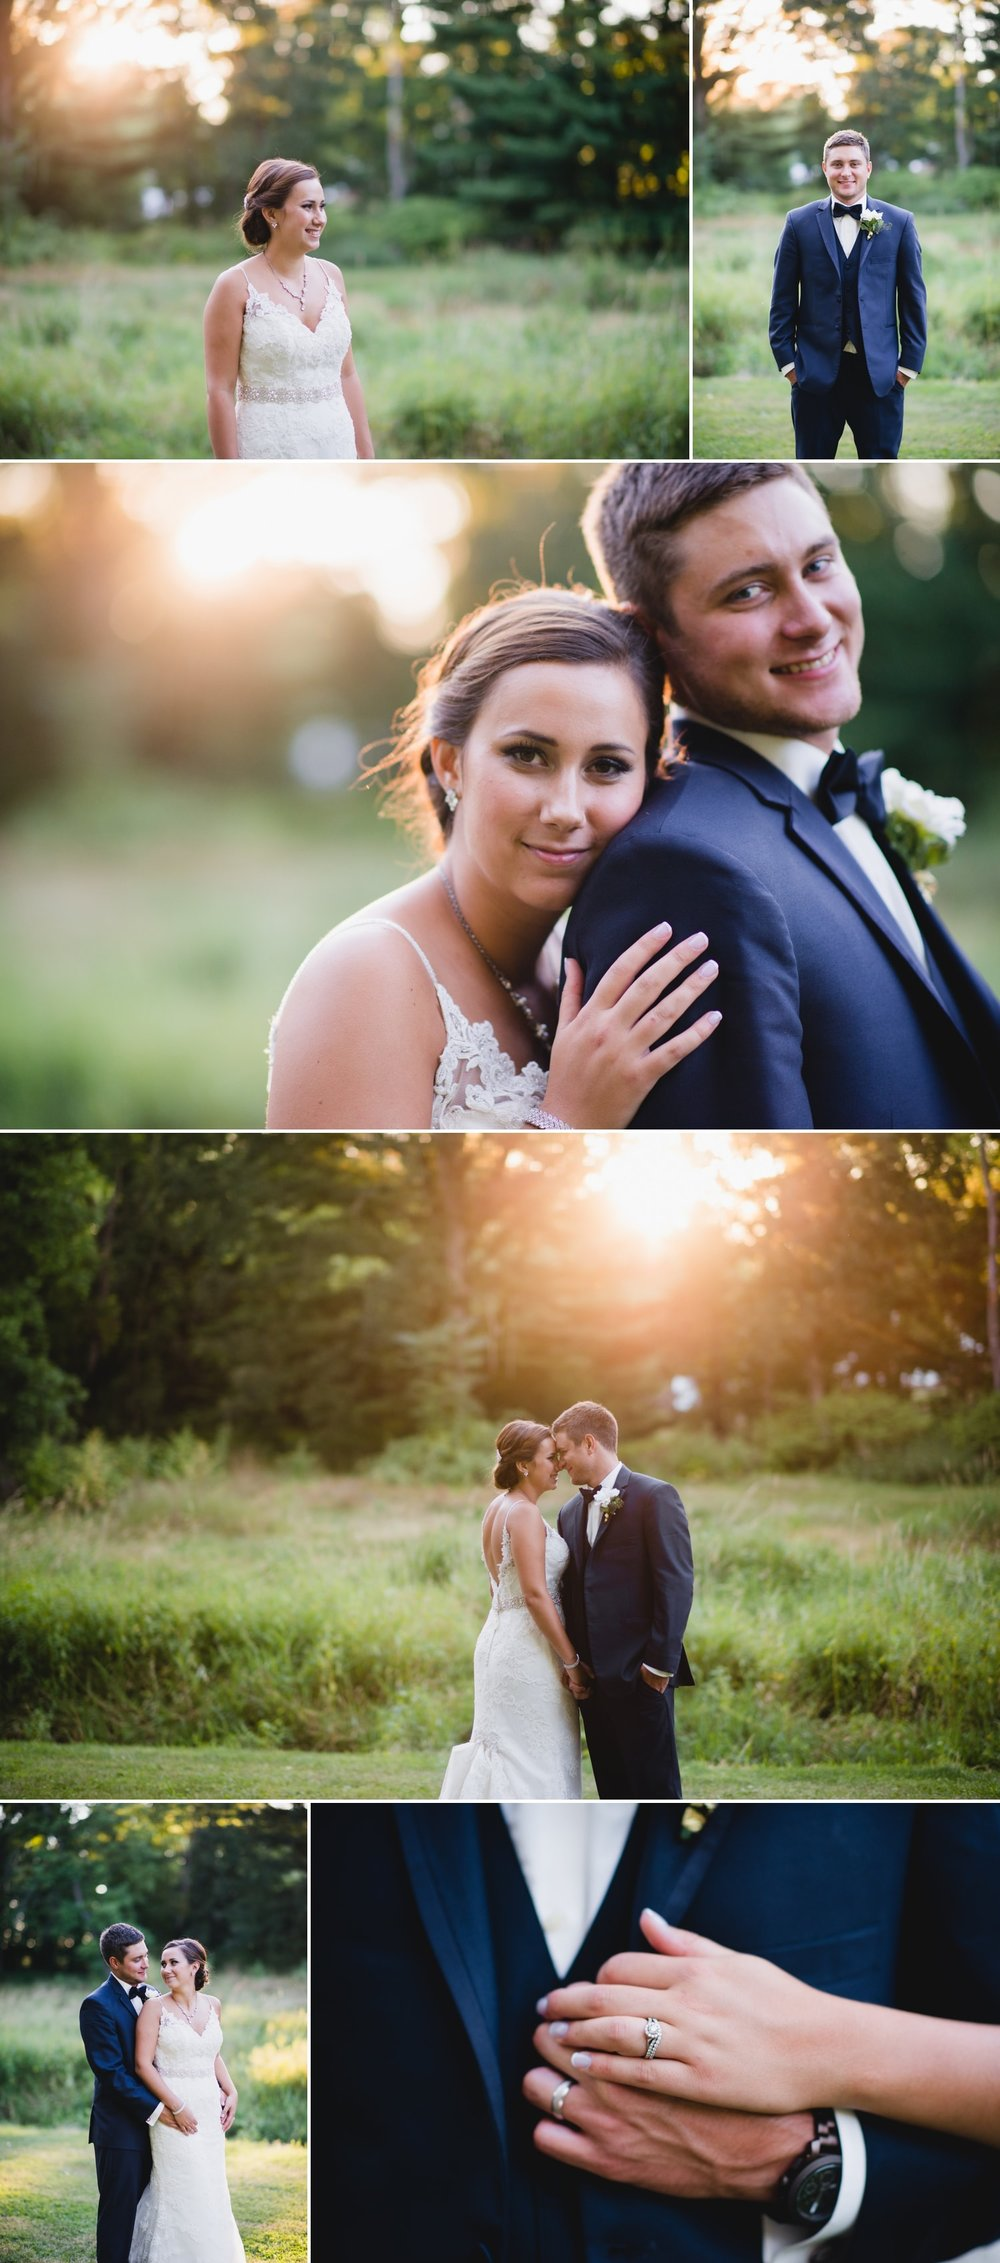 Heckman Wedding Blog 14.jpg